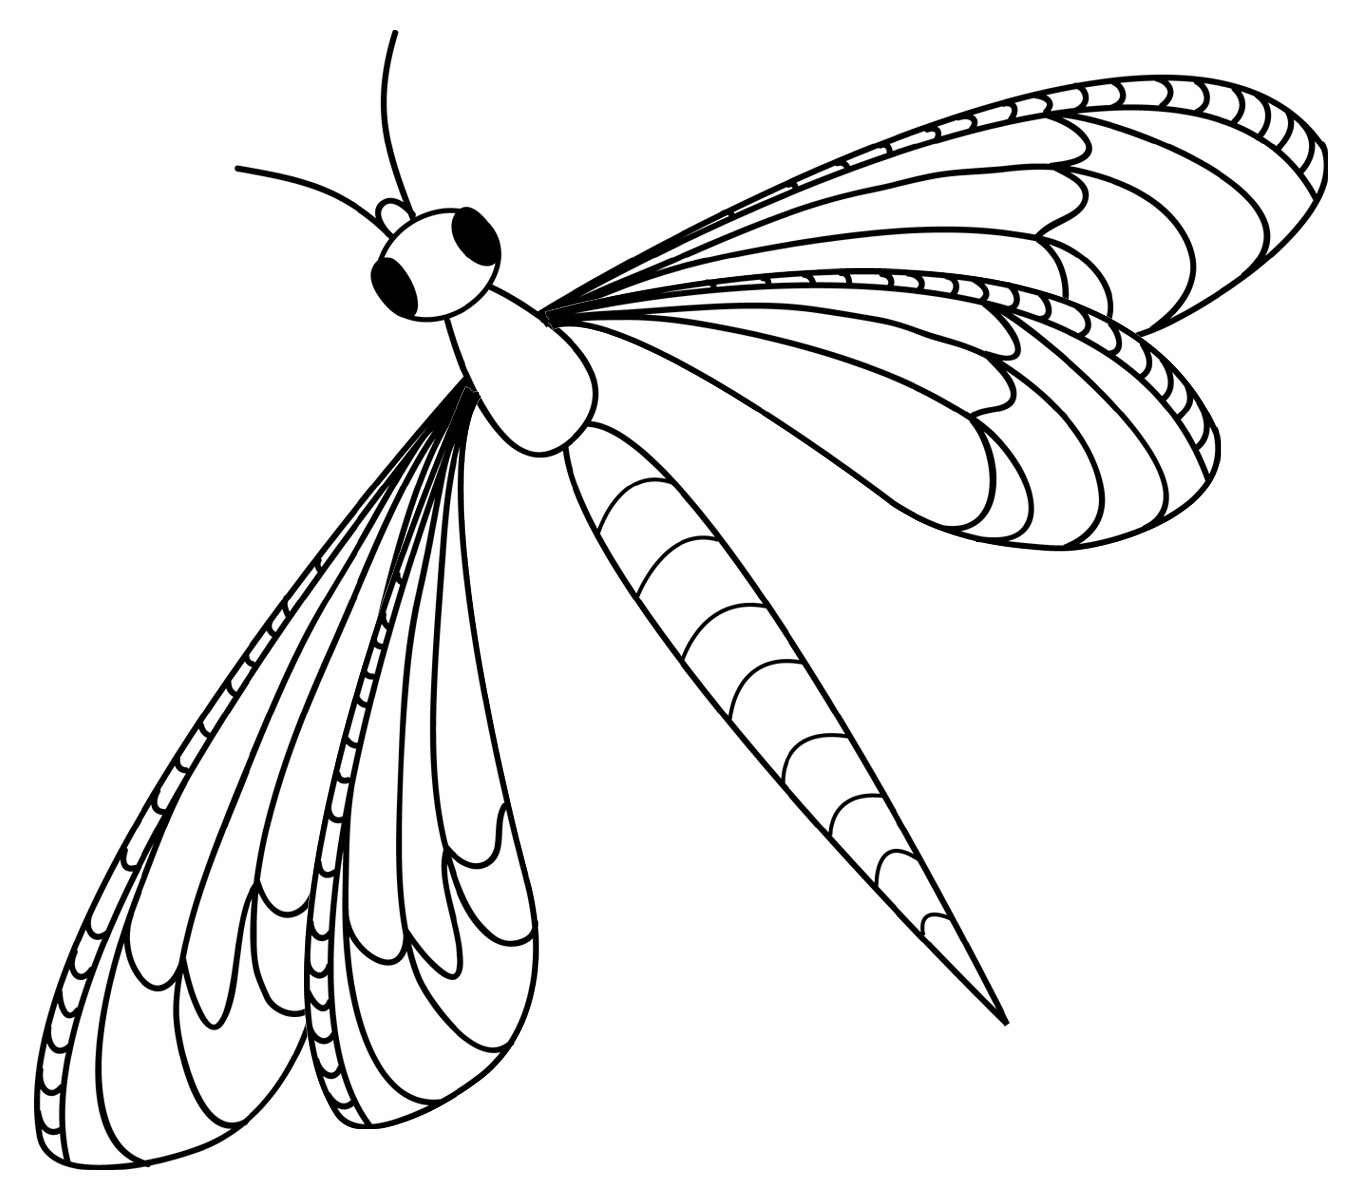 dragonfly coloring pages free printable dragonfly coloring pages for kids